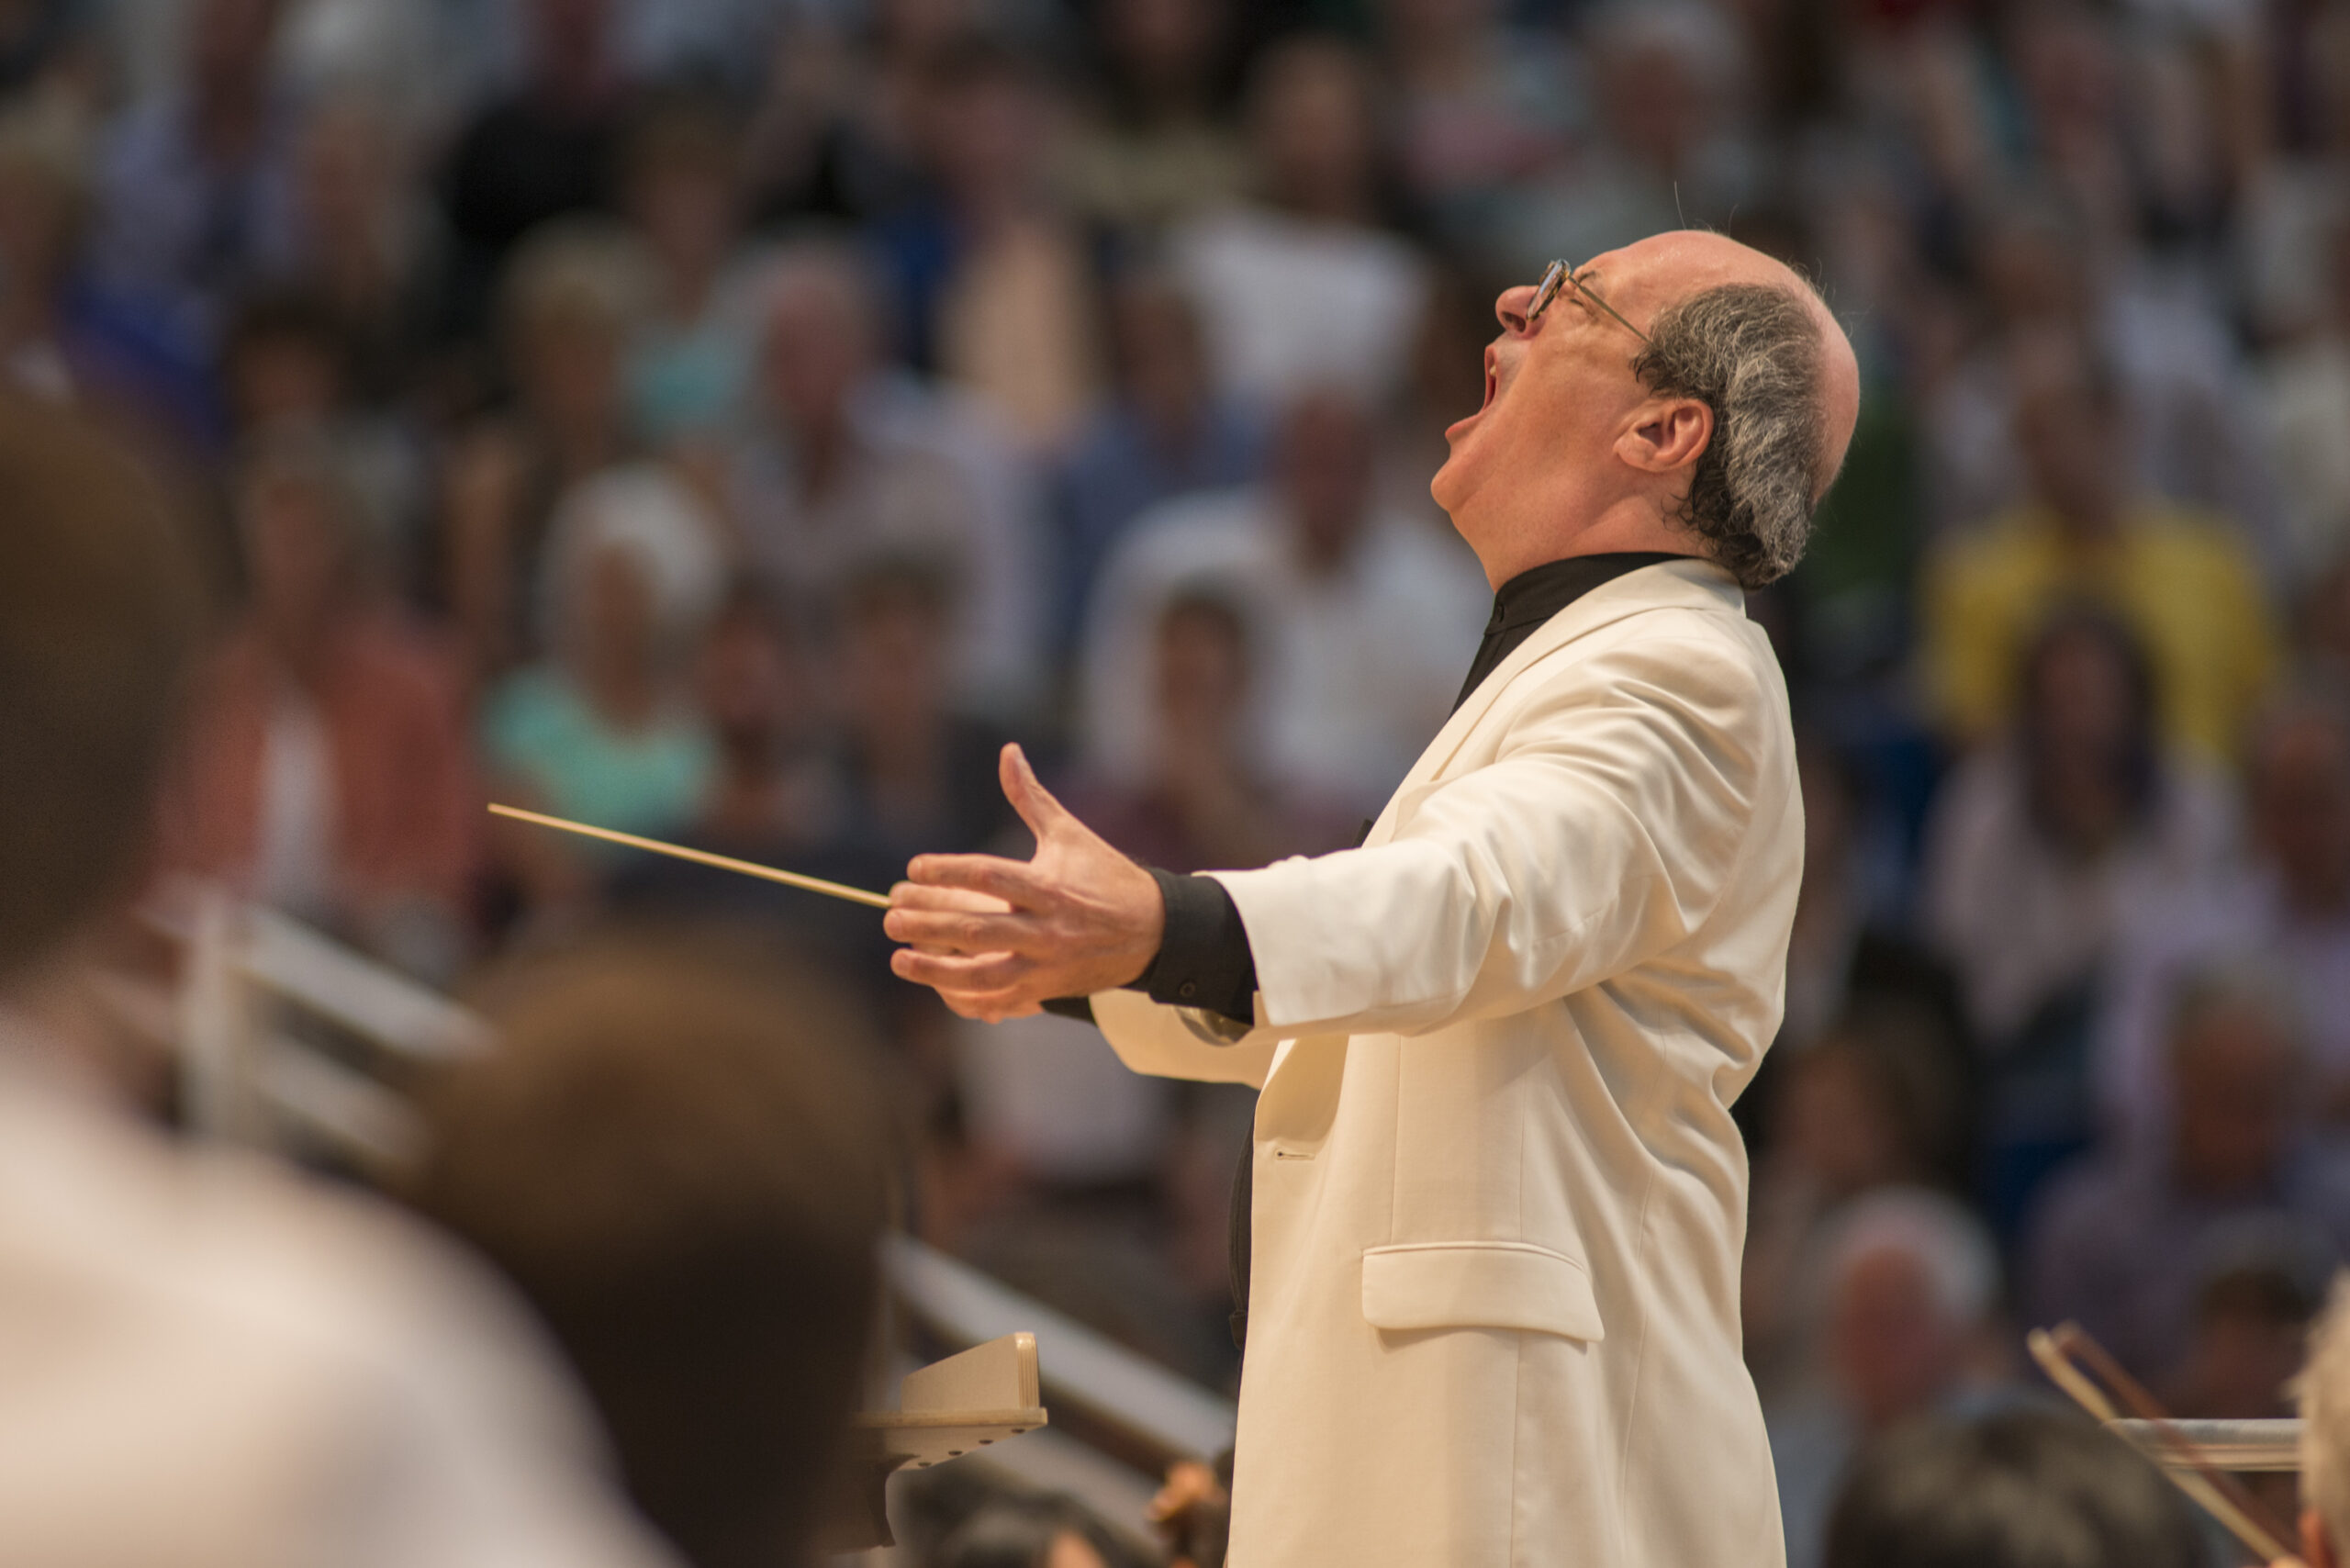 Robert Spano conducts in the Benedict Music Tent